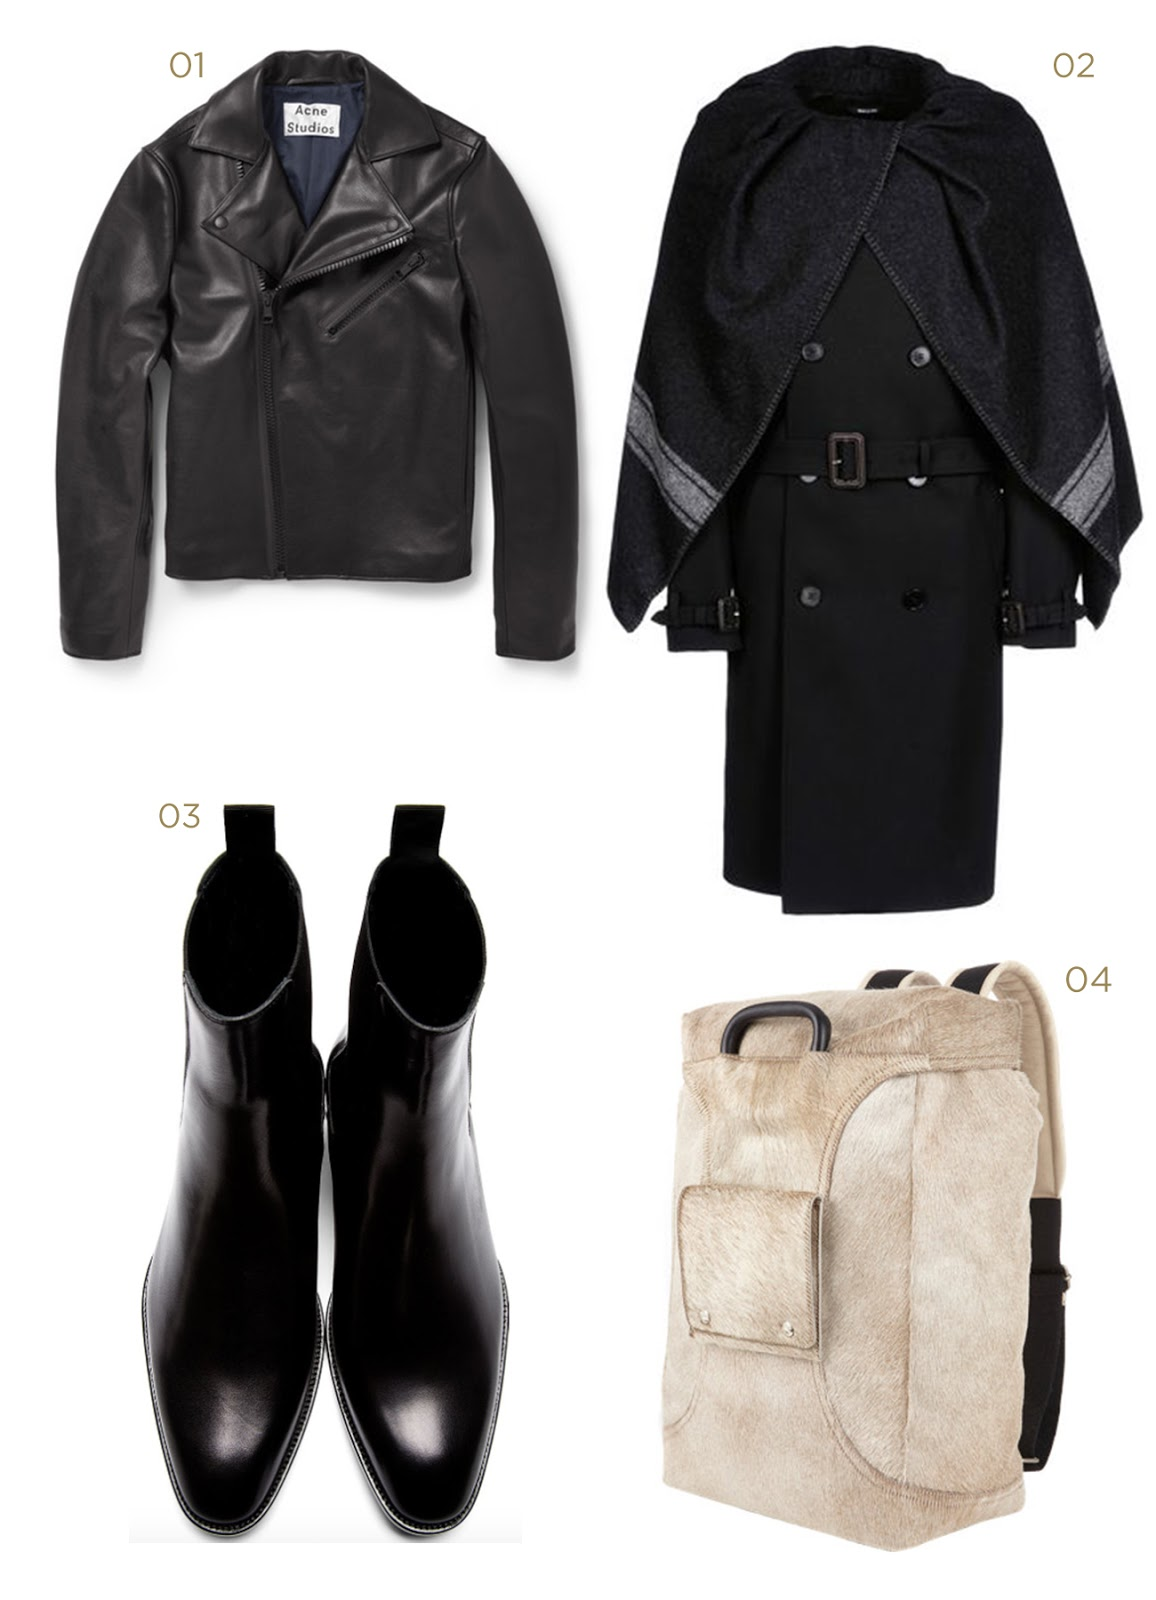 last-minute-holiday-deals-and-steals-barneys-ssense-mrporter-thecorner.jpg